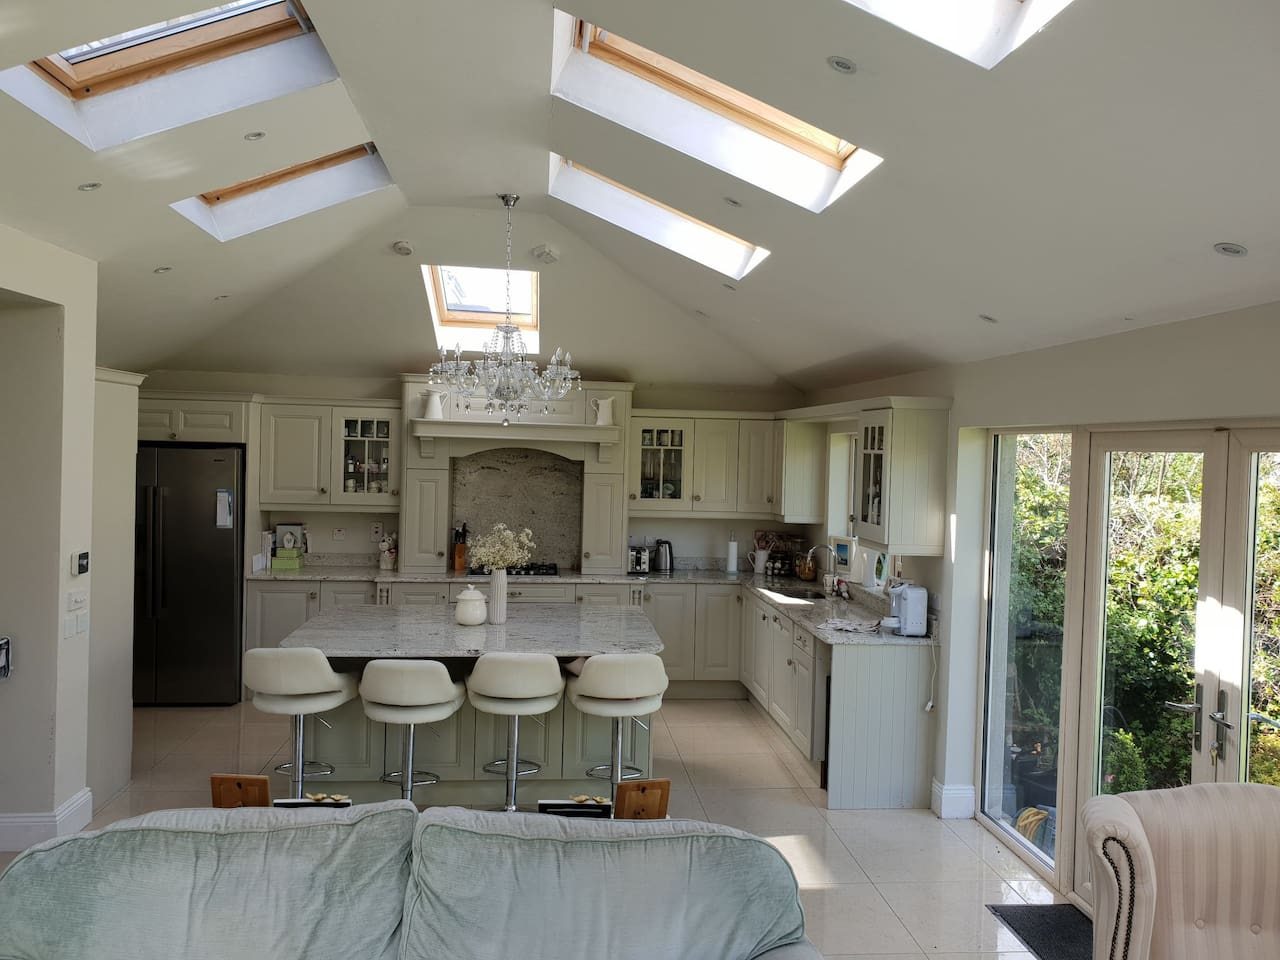 Attractive open plan kitchen dining area with large island to enjoy socialising during your stay.